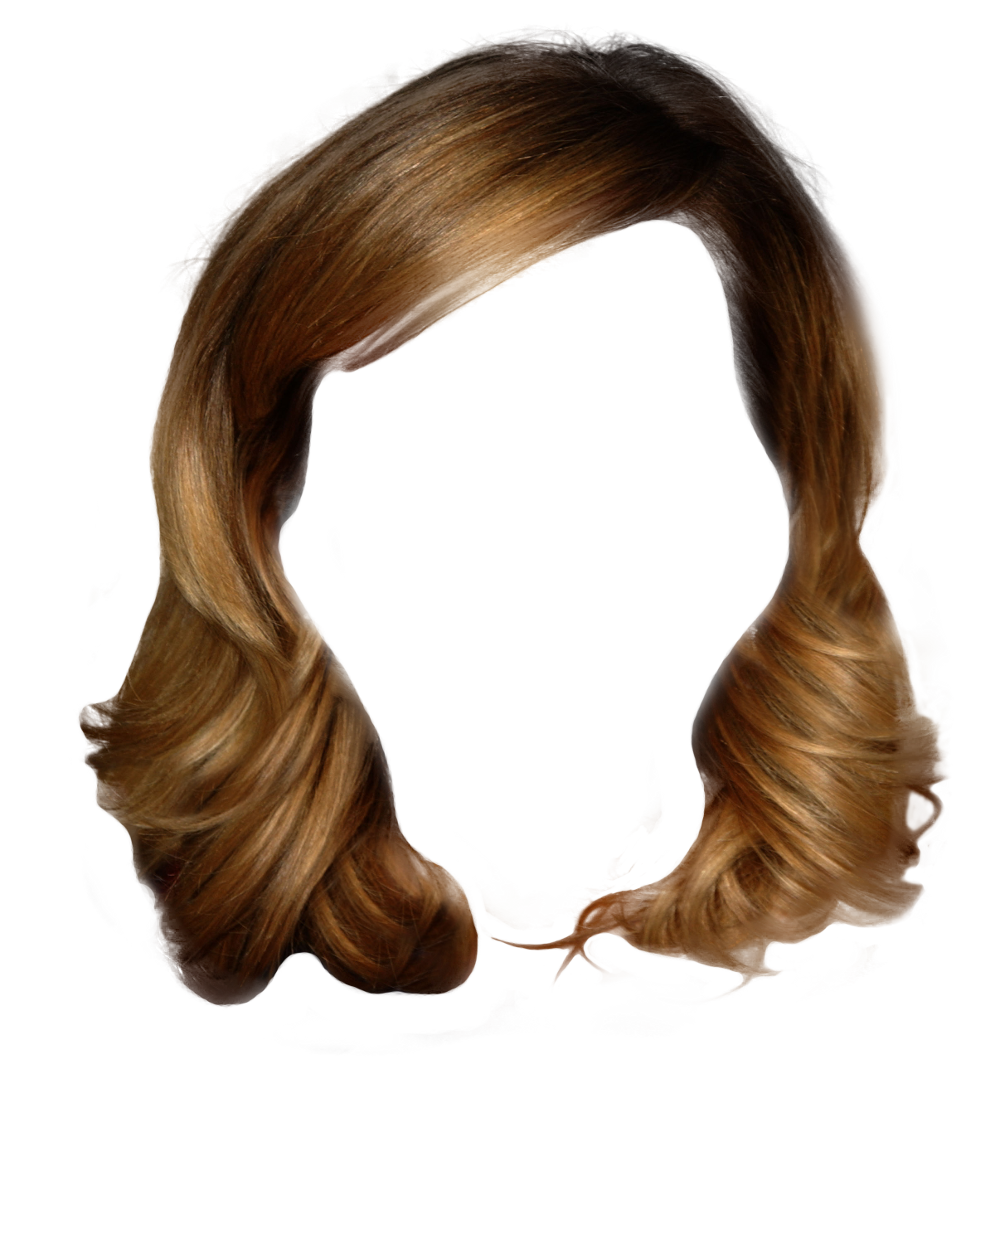 Hairstyles High Quality Png PNG Image - Hairstyles PNG